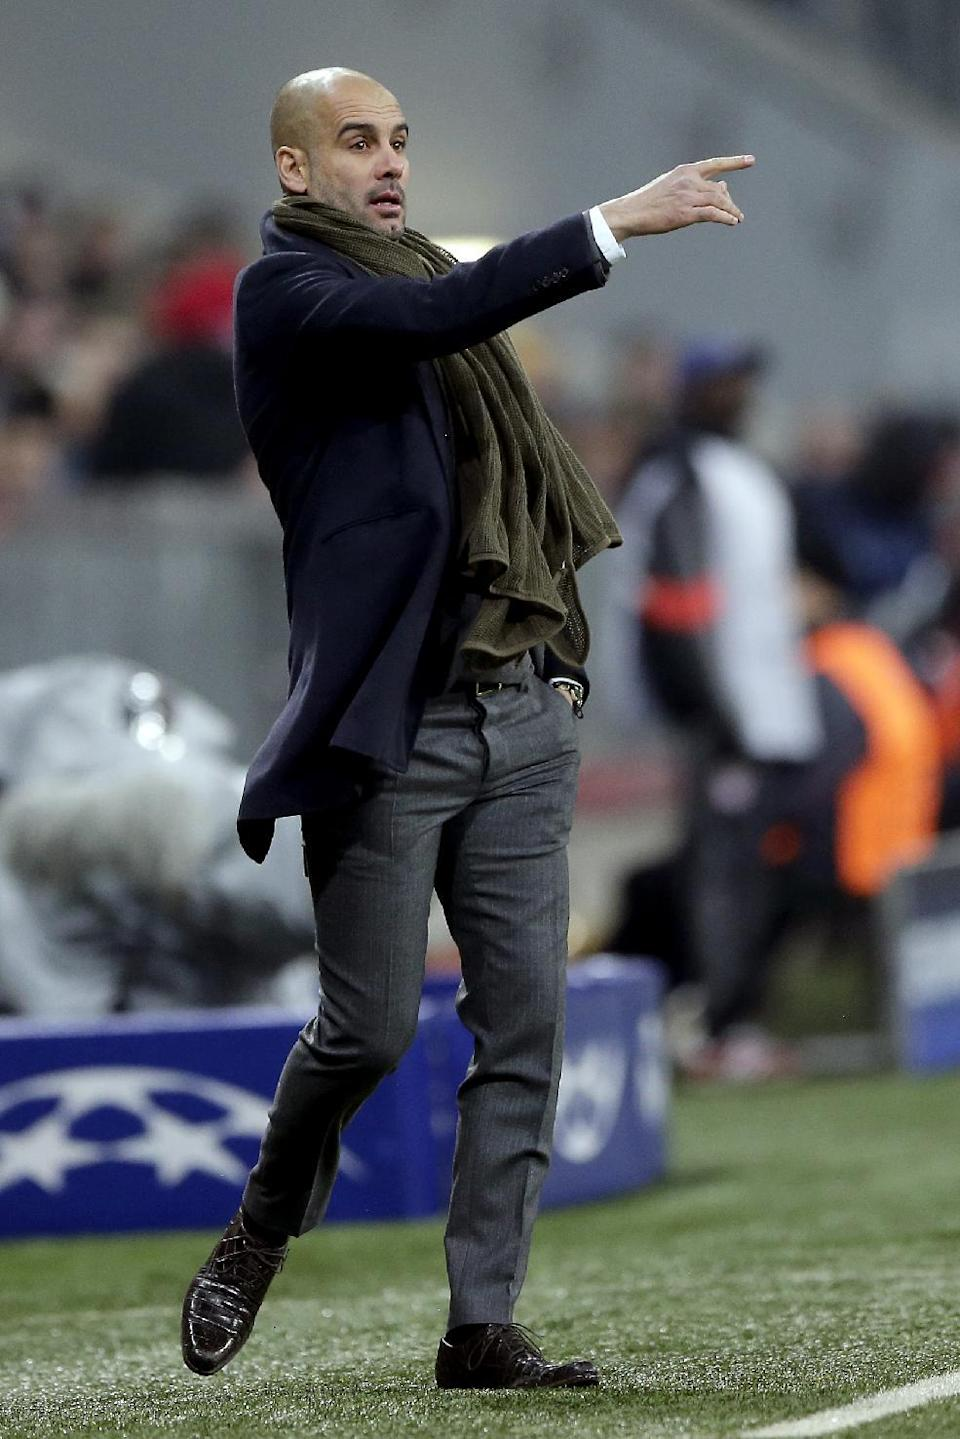 Bayern's head coach Pep Guardiola points during the Champions League group E soccer match between FC Bayern Munich and CSKA Moscow in Munich, Germany, Wednesday, Dec. 10, 2014. (AP Photo/Matthias Schrader)